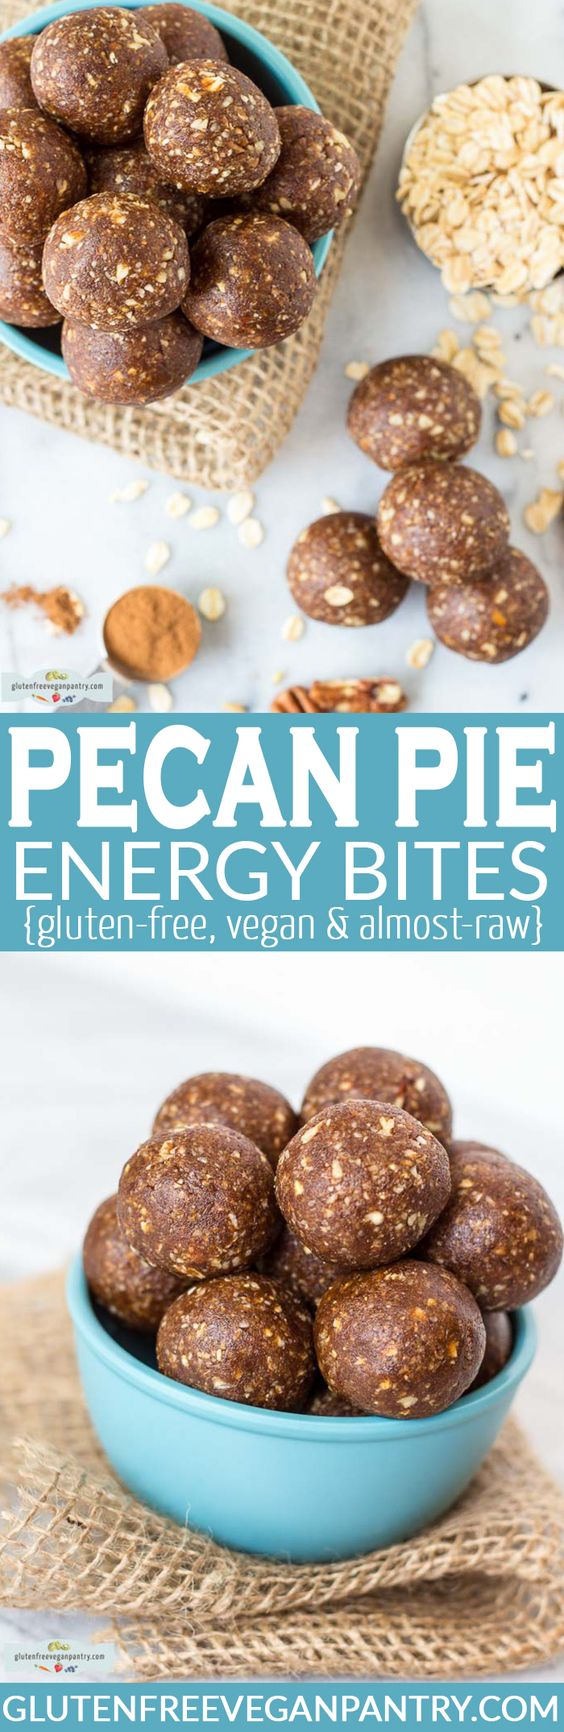 Pecan Pie Energy Bites - 5 ingredients, 15 minutes & incredible flavour! Vegan, gluten-free and almost-raw | glutenfreeveganpantry.com